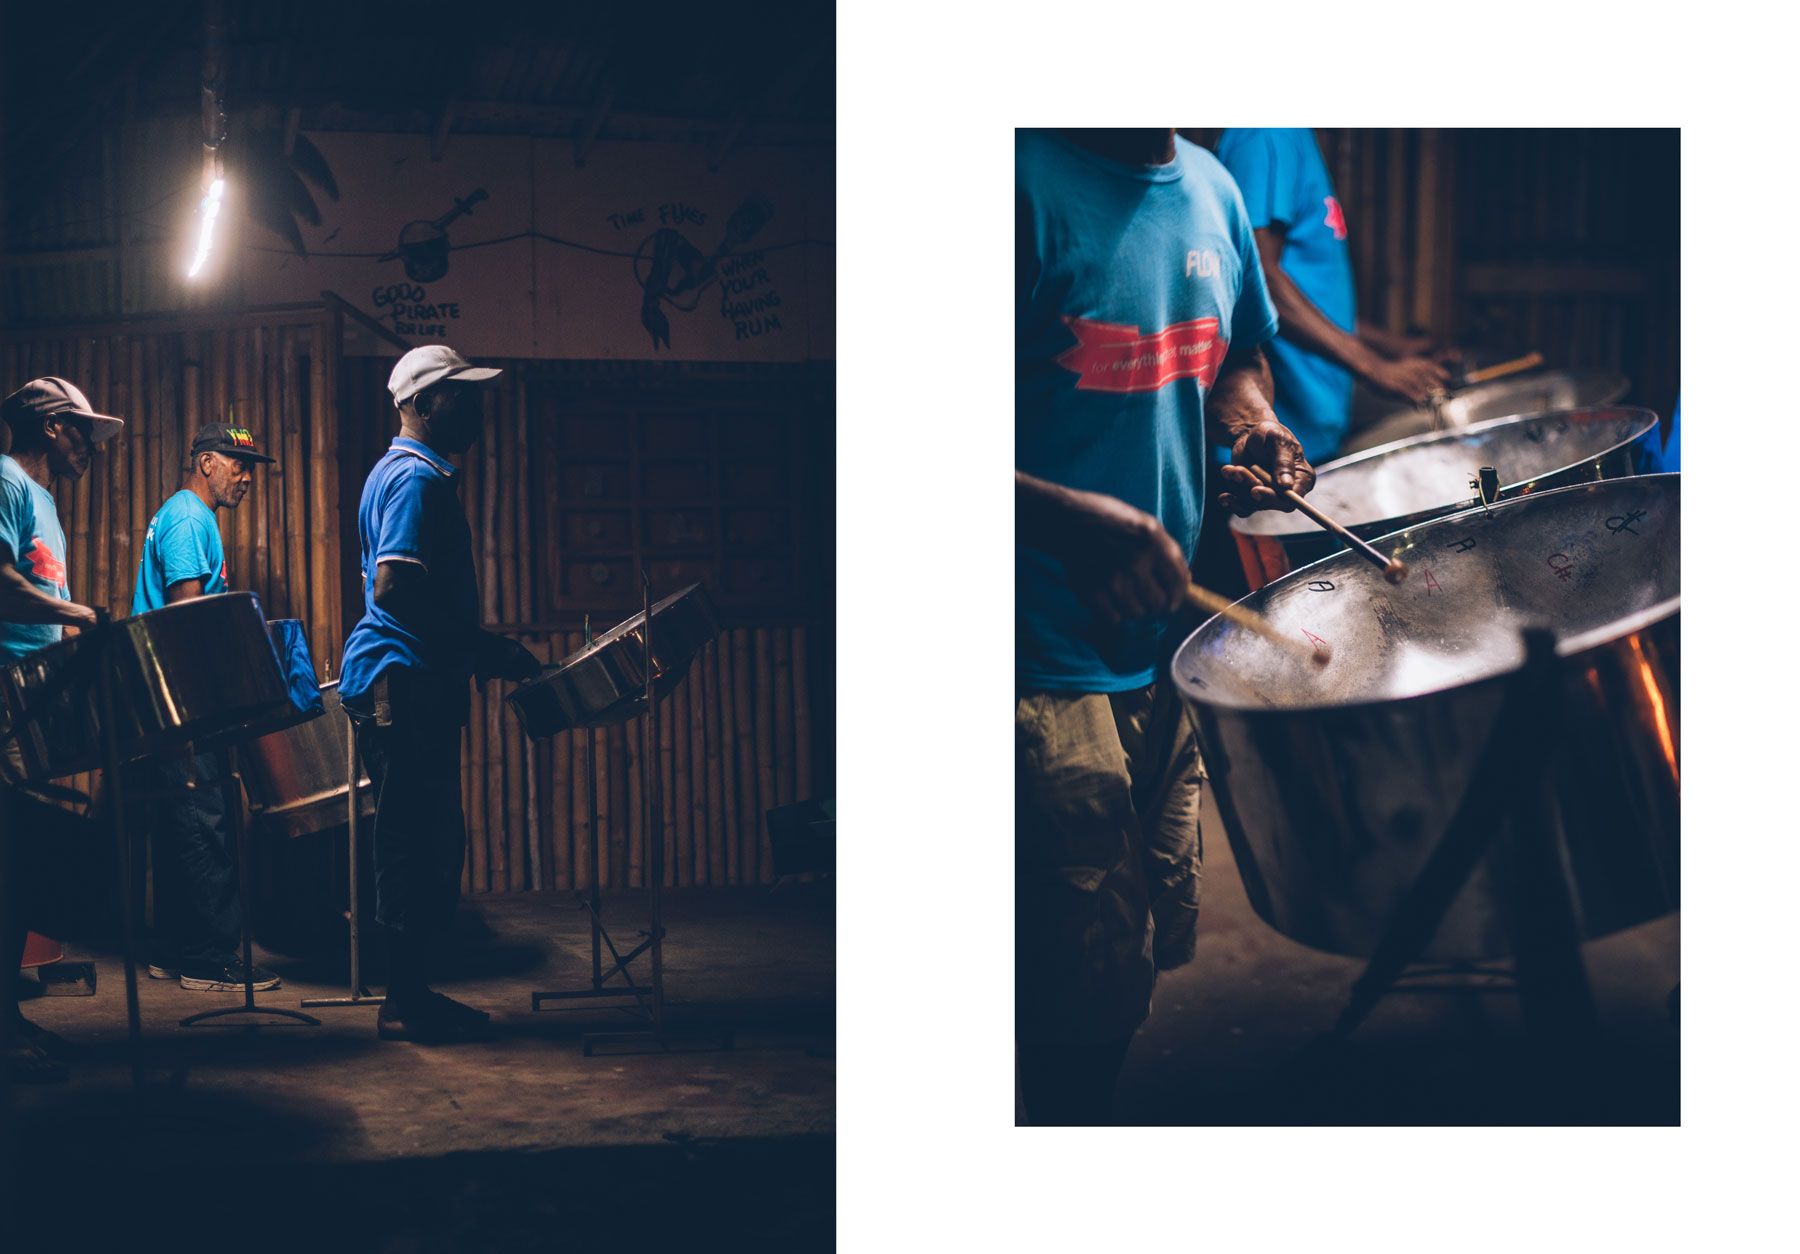 Steel band, Caraïbes, Saint Vincent